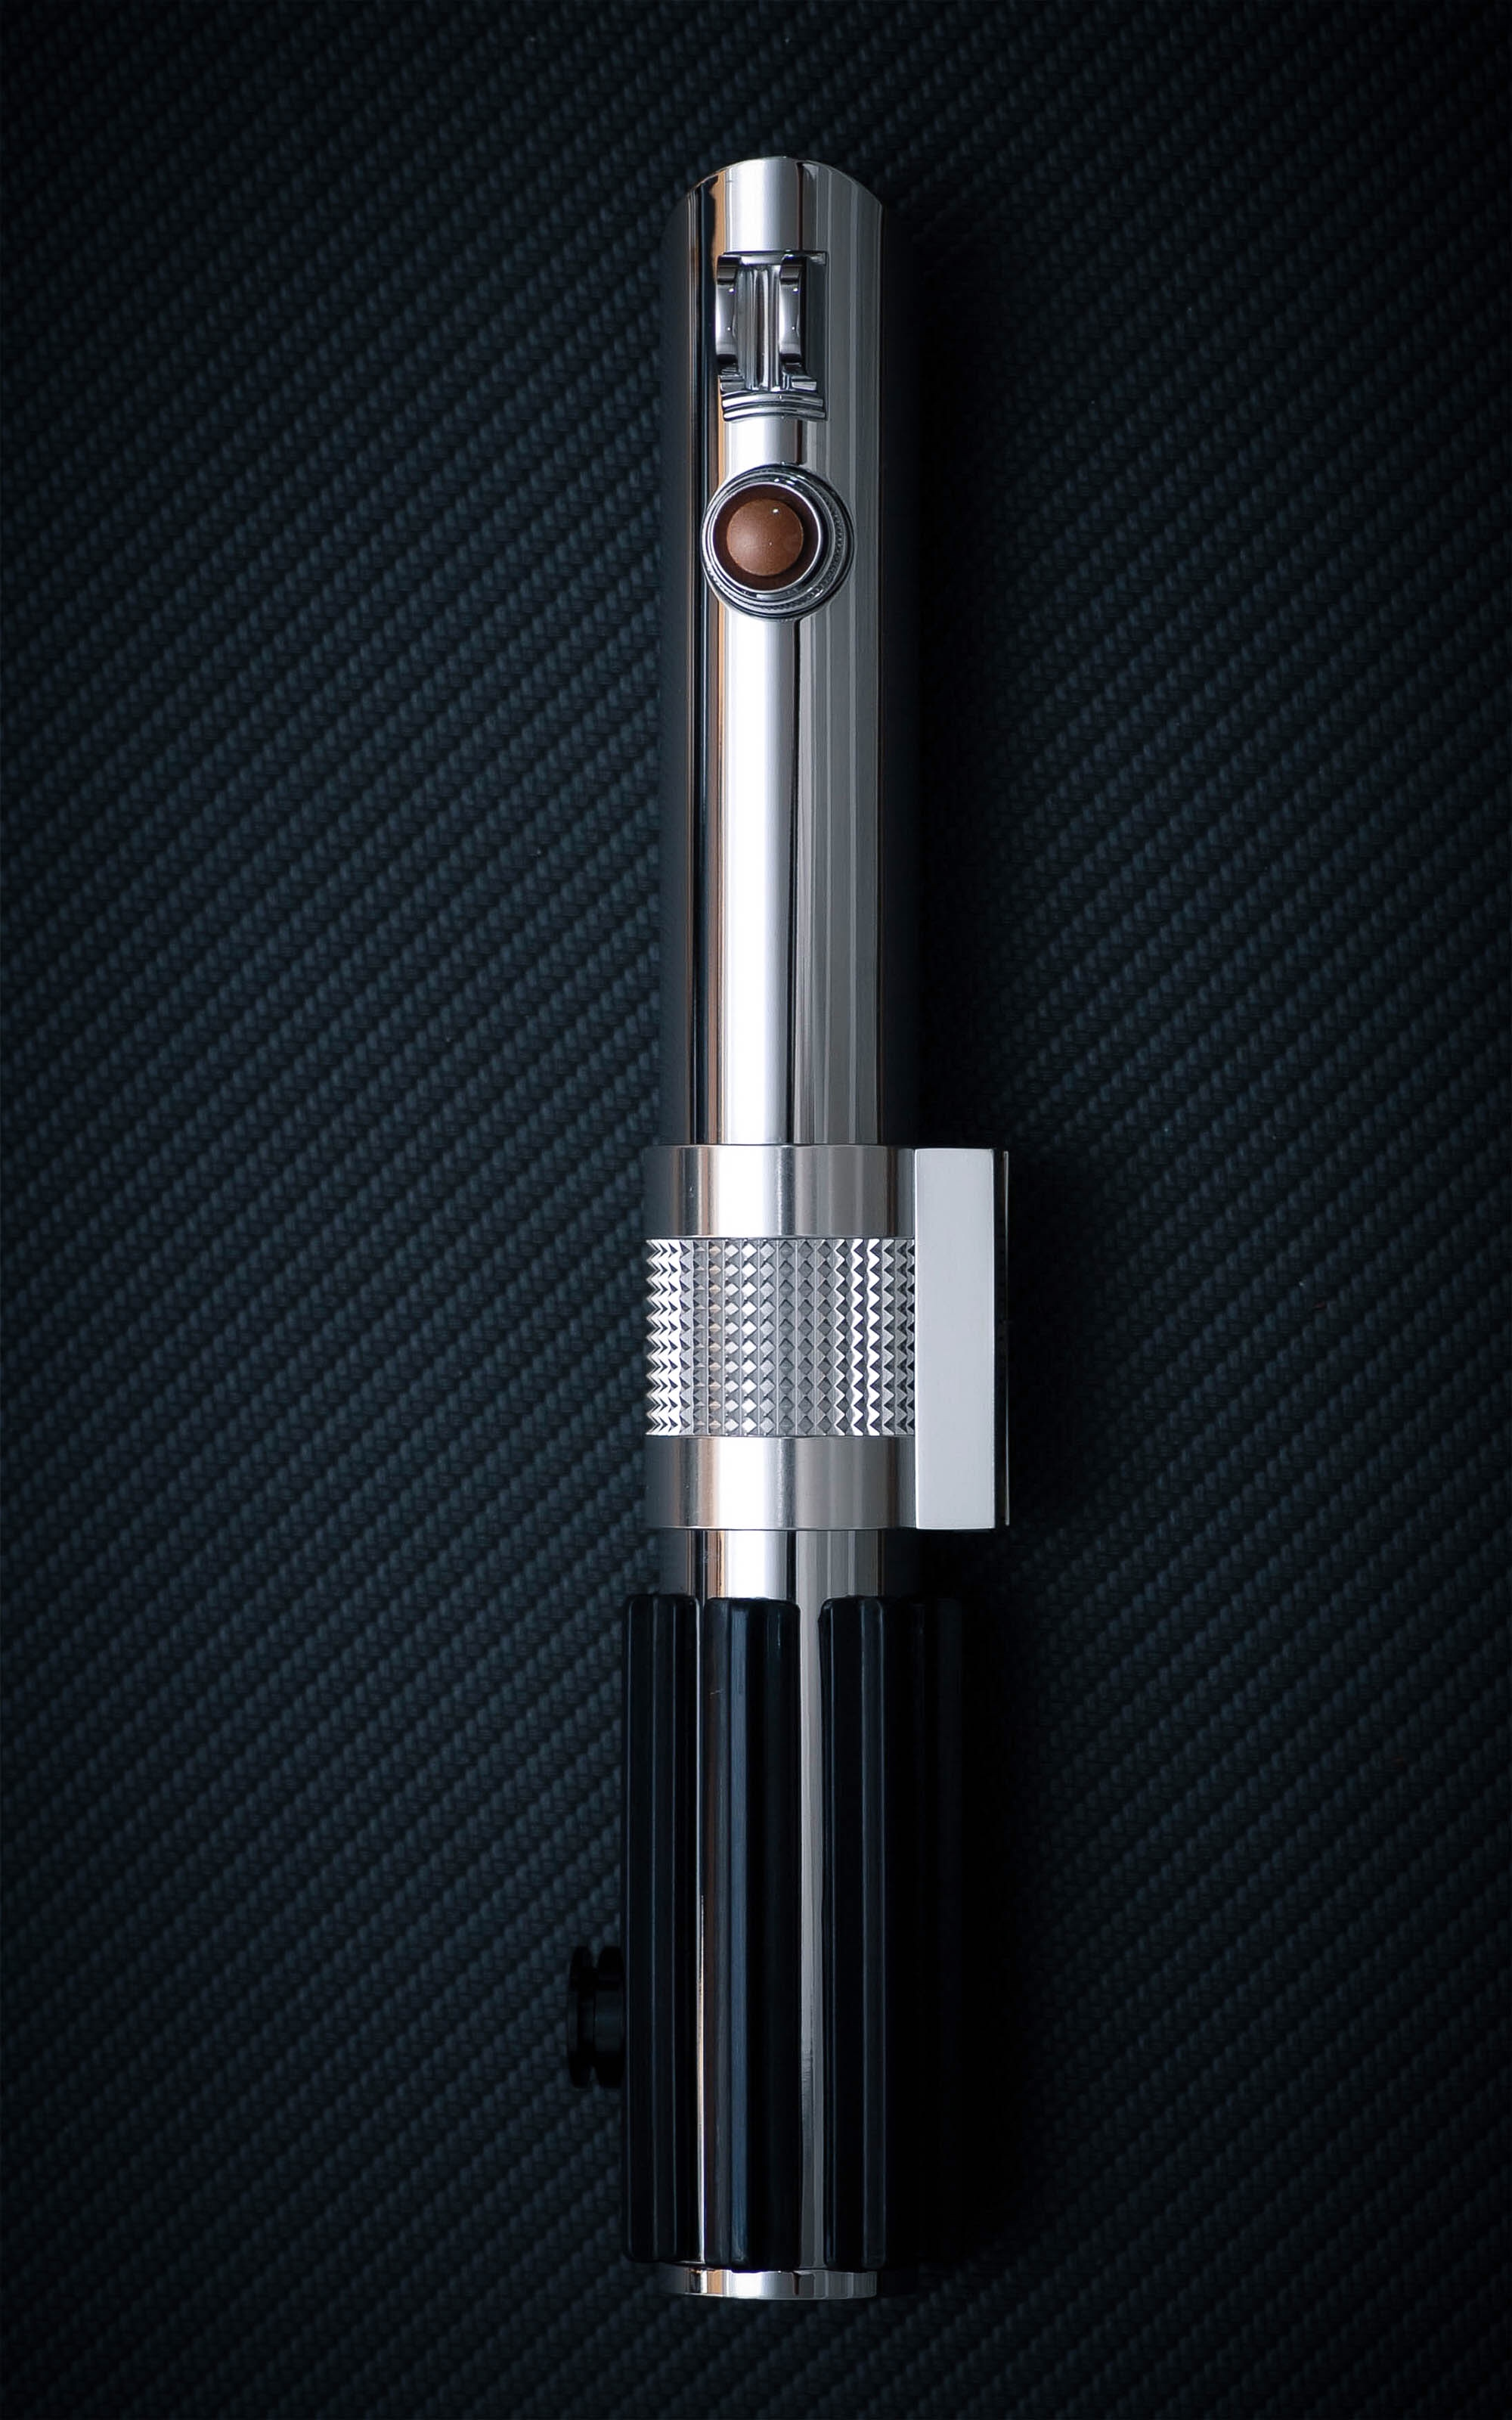 TXQsaber Anakin Skywalker Handle RGB Lightsaber Neopixel Blade Heavy Dueling Proffie2.2 Soundboard from Star Wars-Only Handle 1